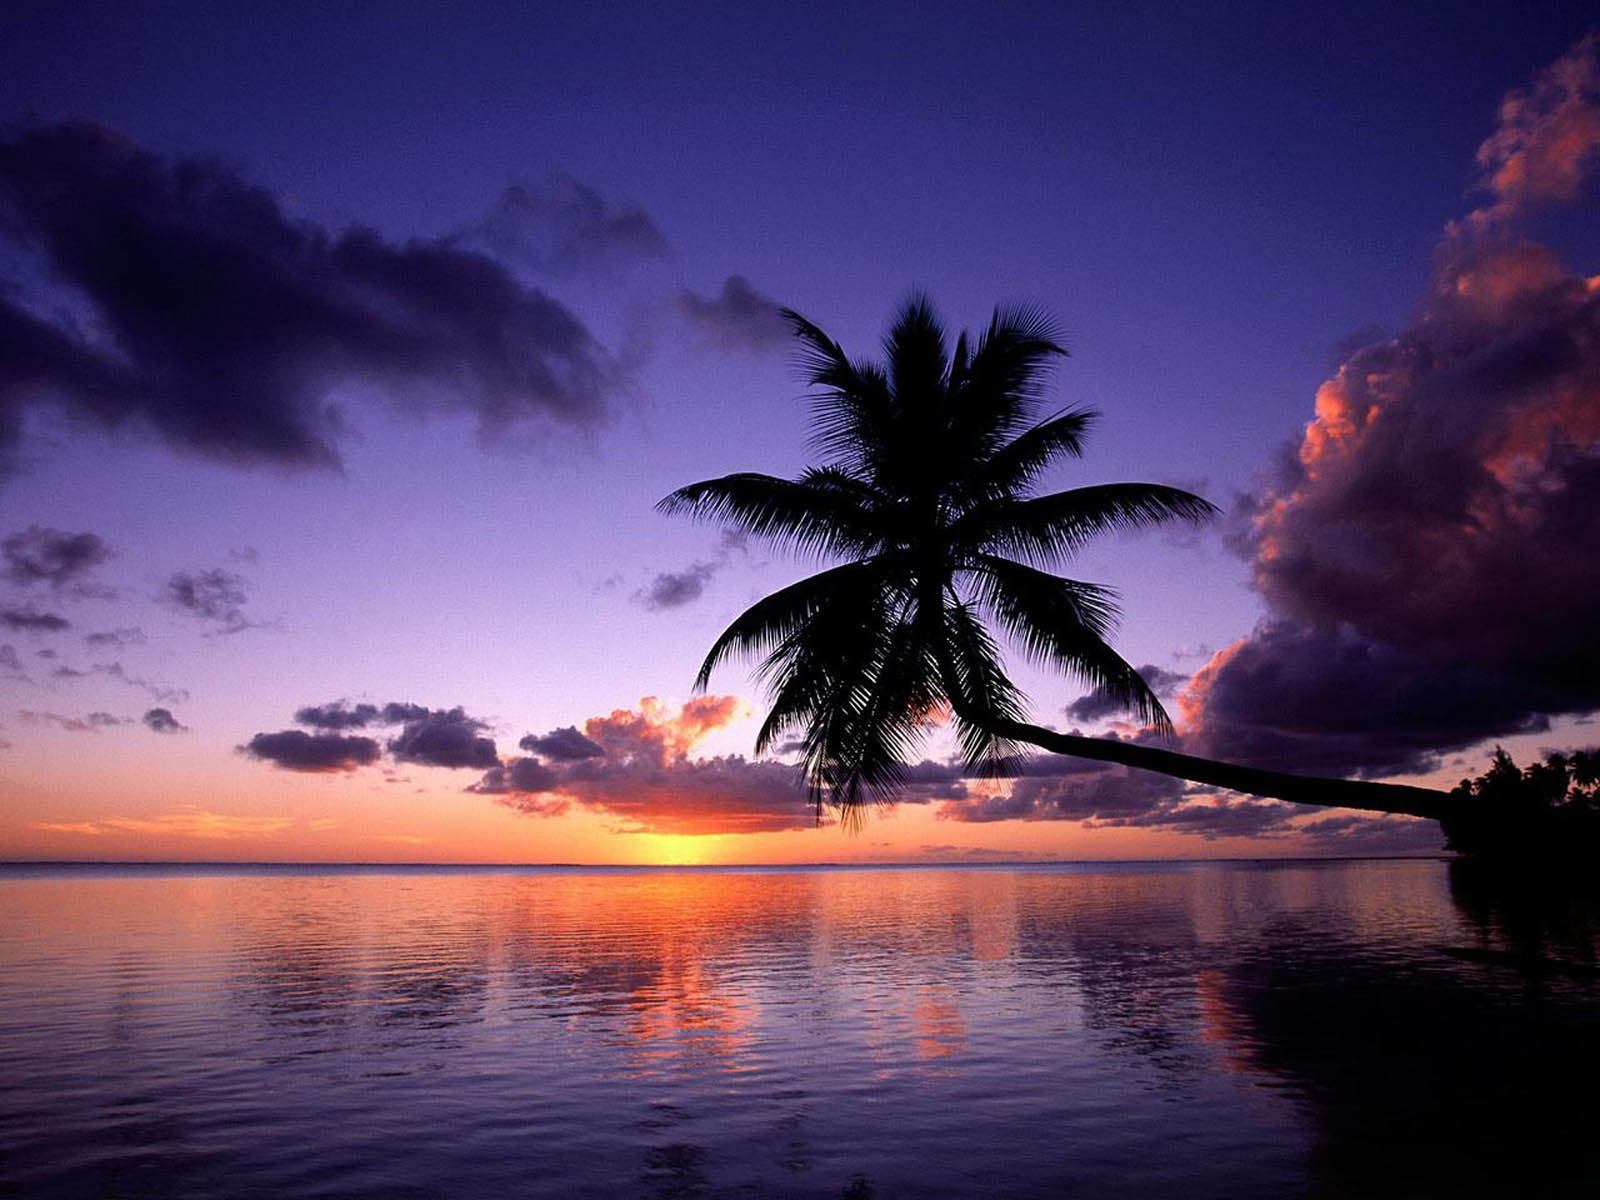 Island Sunset Wallpapers Hd Wallpapers 1600x1200